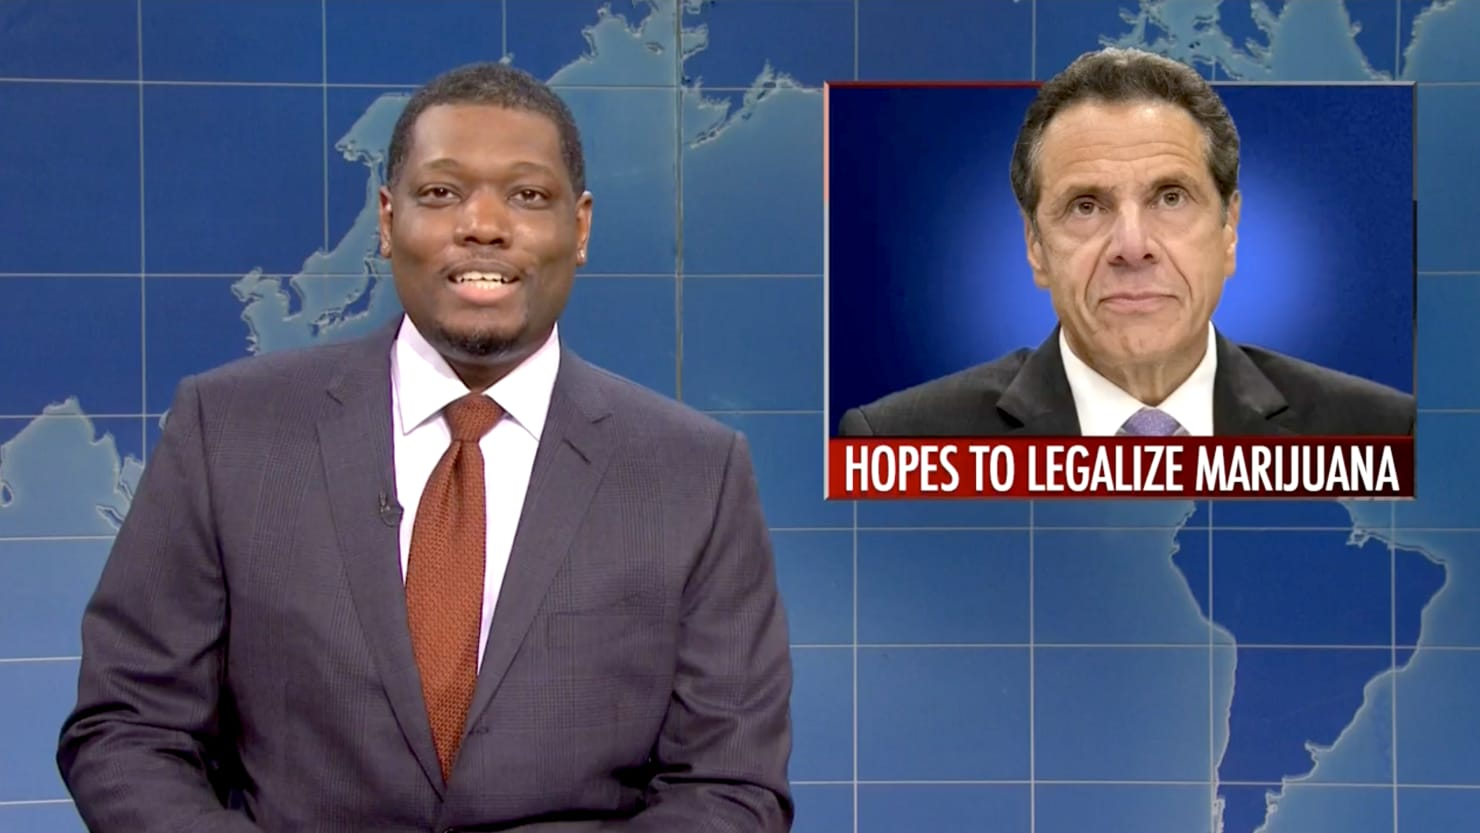 SNL's Weekend Update Unloads on Andrew Cuomo Over COVID 'Cover-Up'